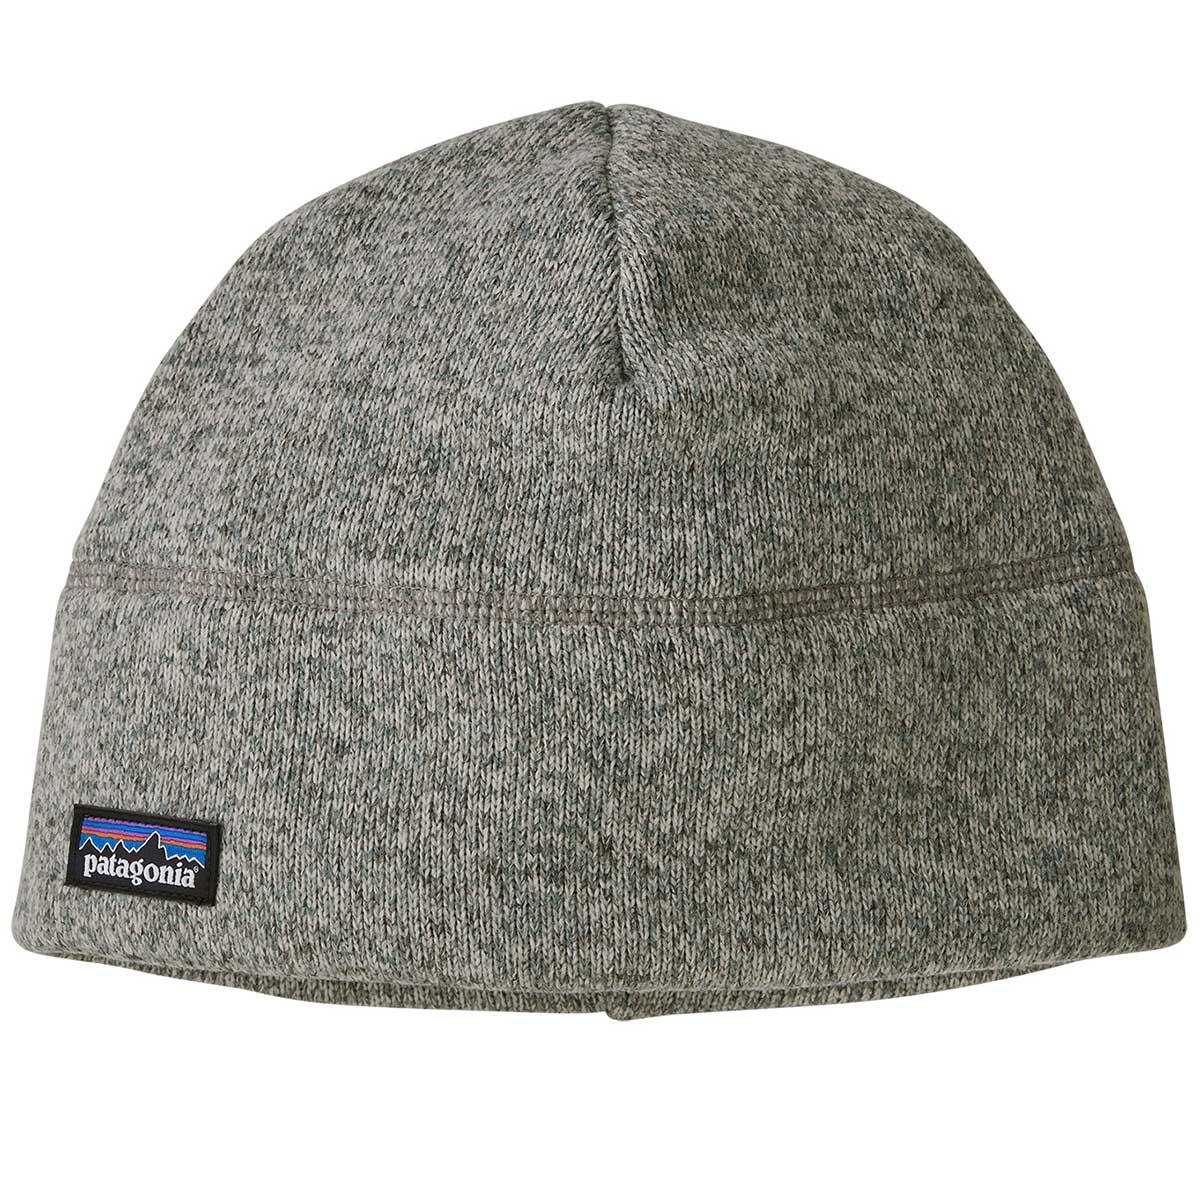 Patagonia Better Sweater Beanie in Stonewash front view